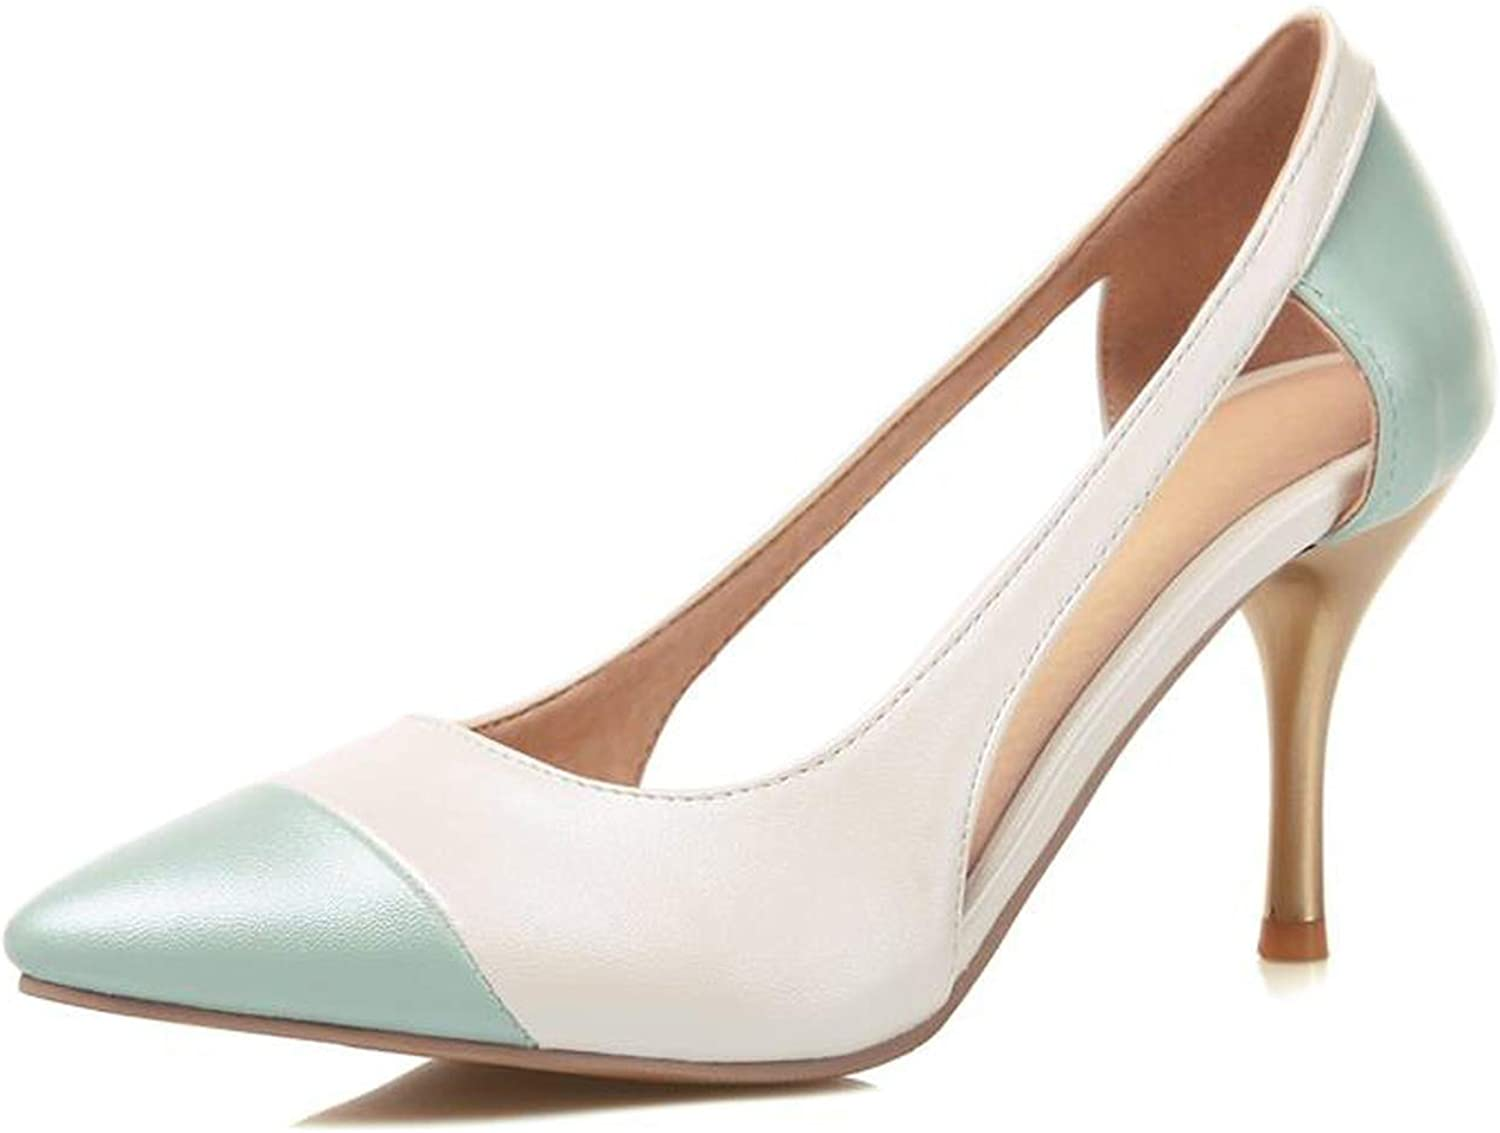 New Summer womenmps Pointed Toe Leather Stiletto high Heels Wedding shoes Woman,White,9